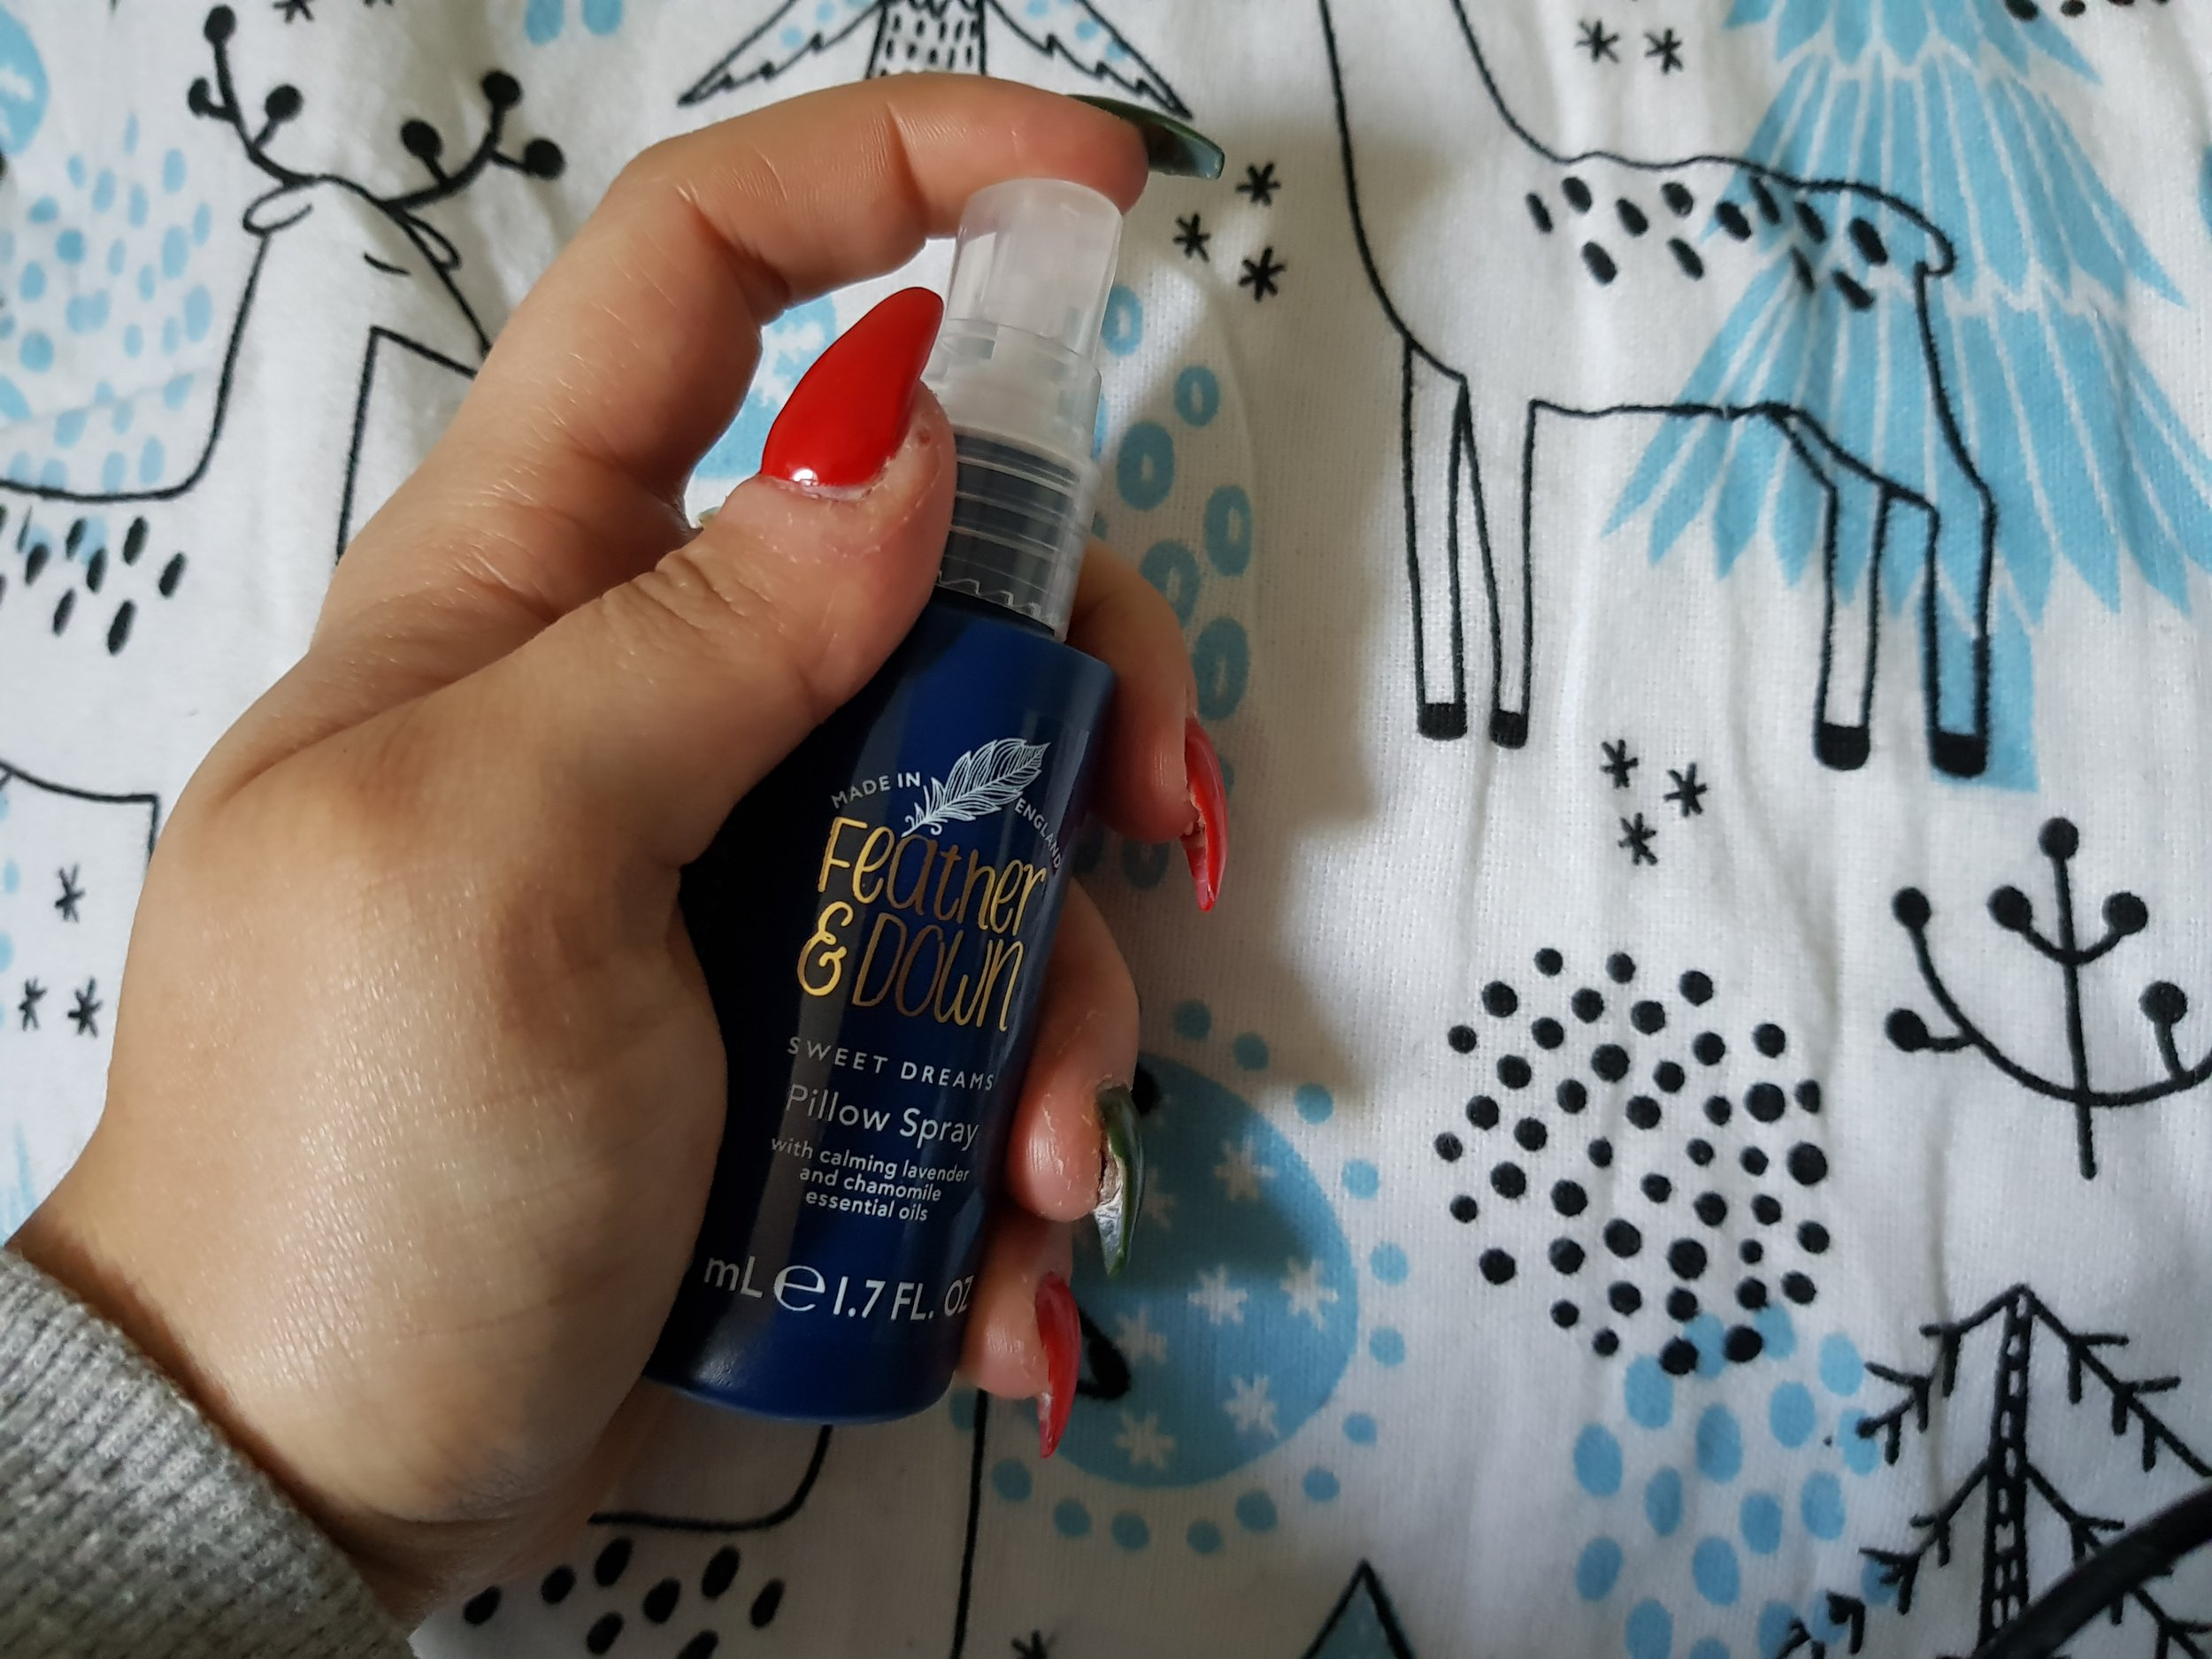 Feather & Down sweet dreams pillow spray